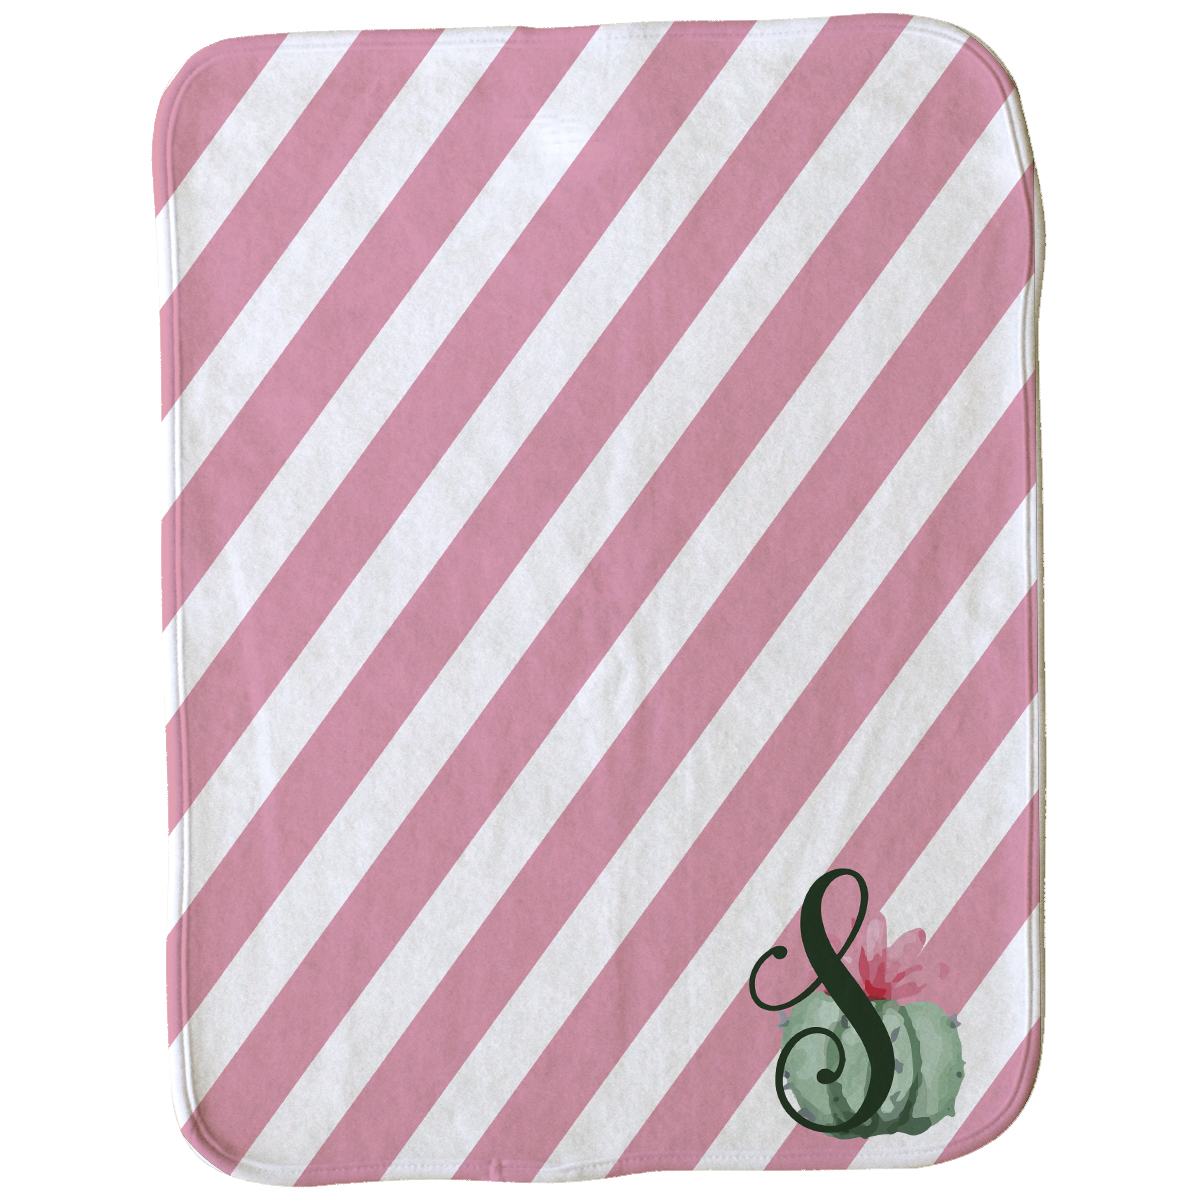 Cute Cactus Burp Cloth